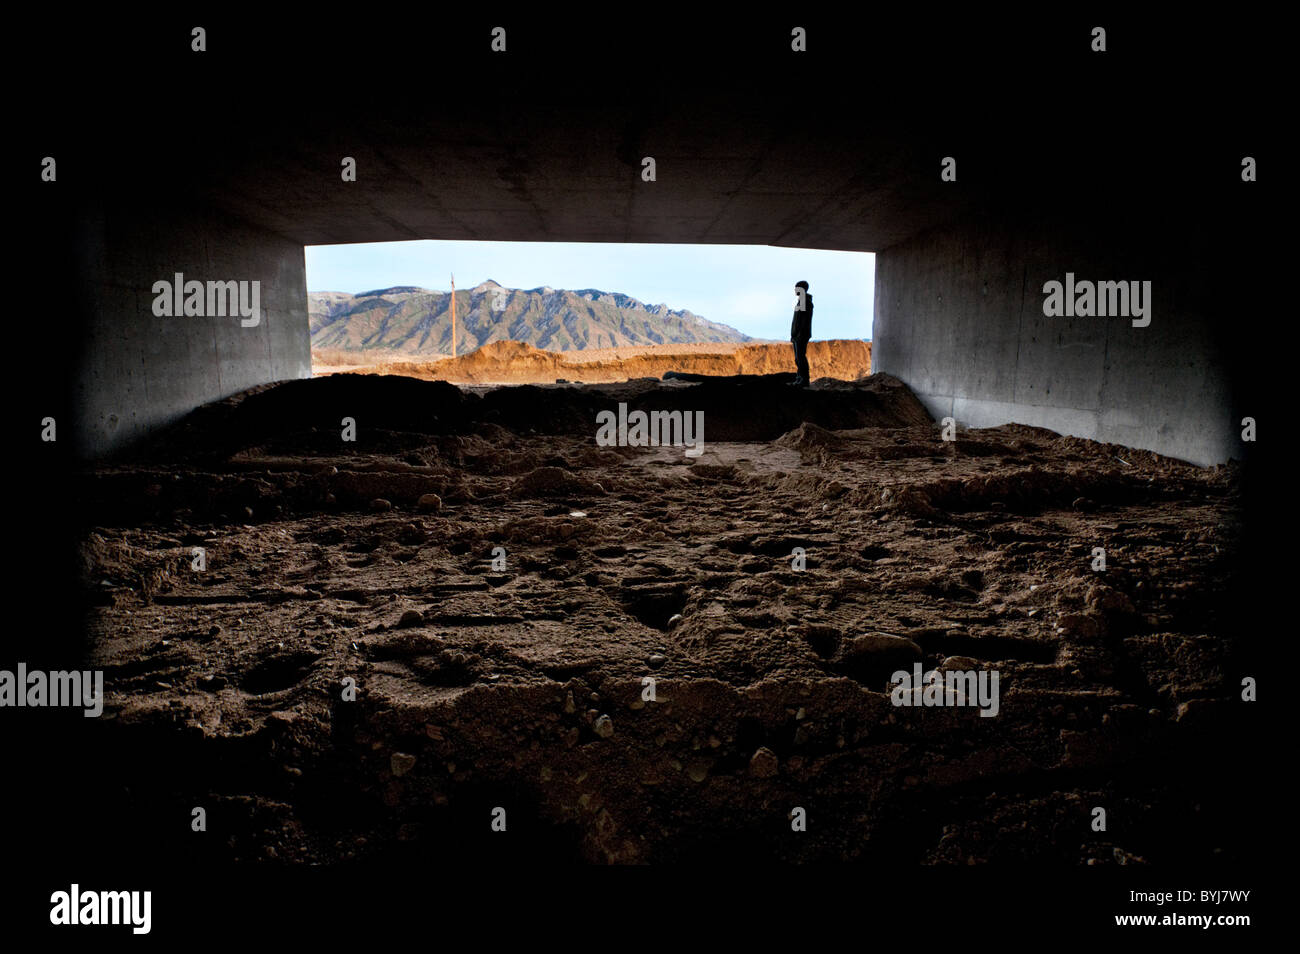 Man standing at entrance to dark tunnel - Stock Image